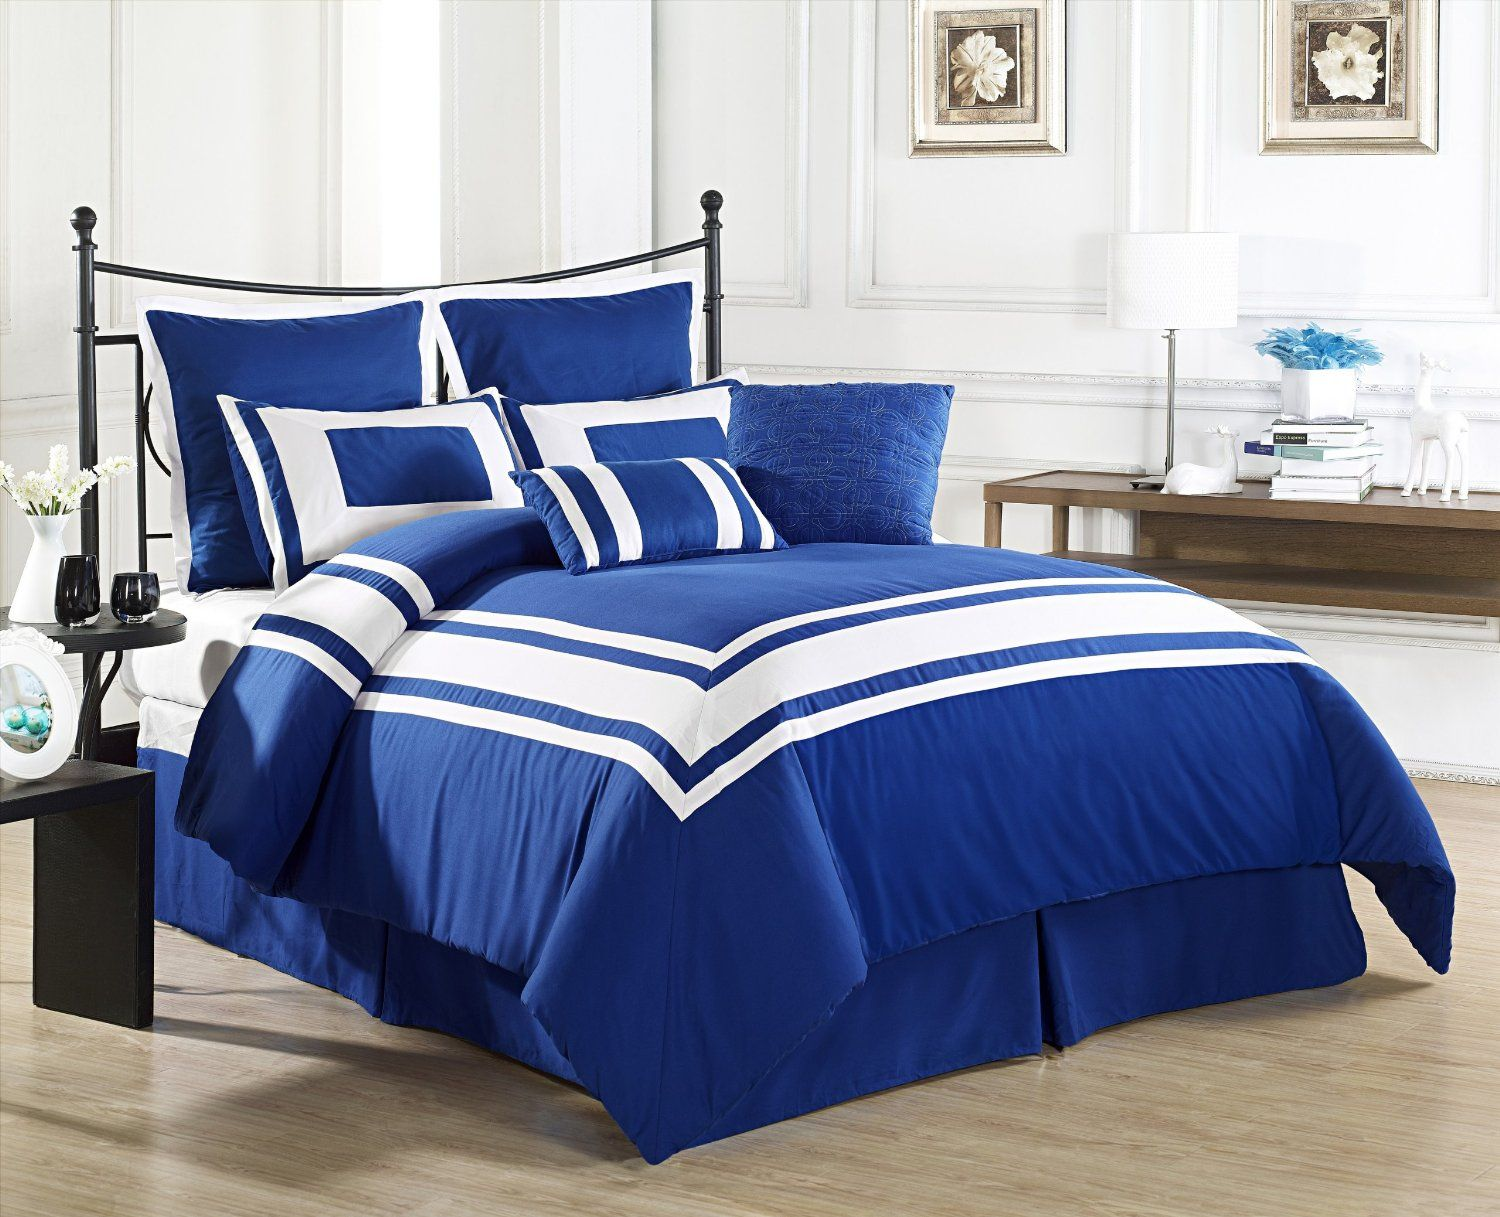 Amazoncom Cozy Beddings Lux Dcor 8Piece Comforter Set King